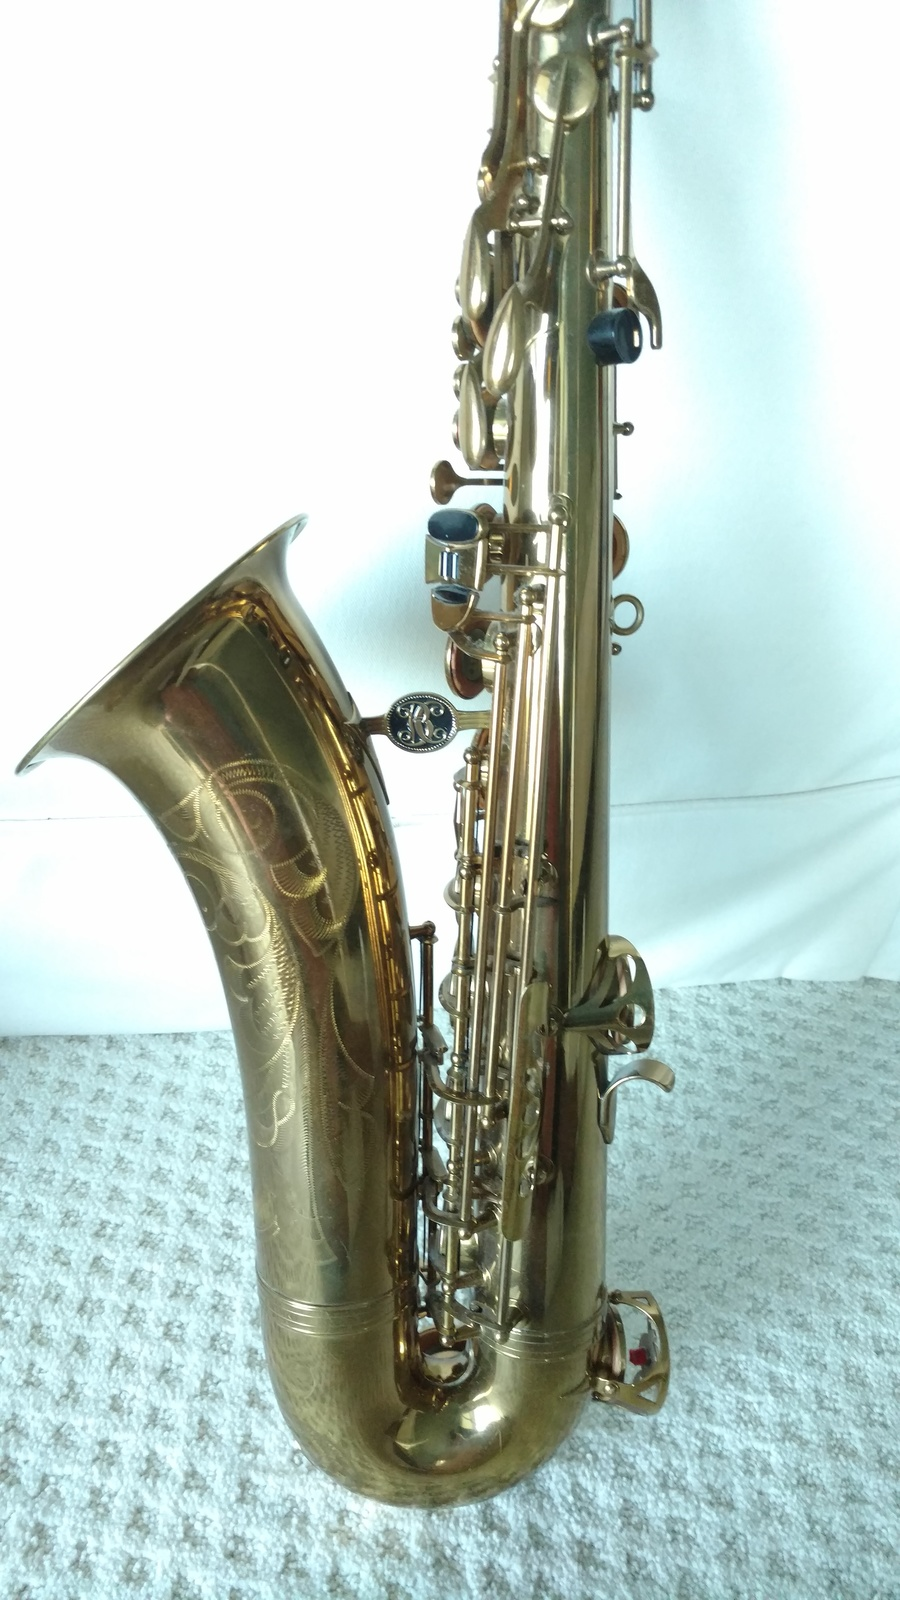 Groovy I Have A Buffet Crampon Super Dynaction Tenor Saxophone Download Free Architecture Designs Ponolprimenicaraguapropertycom